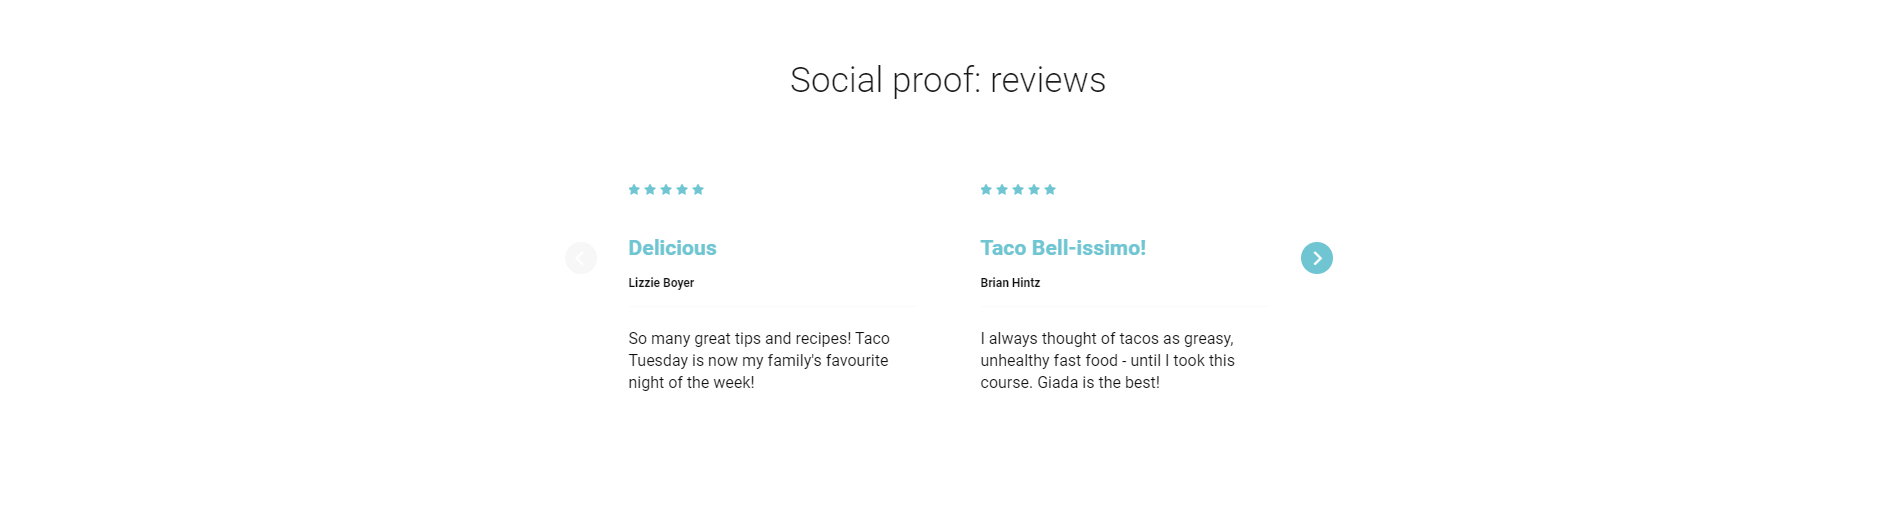 Social_proof_reviews_-_empire_halo.png